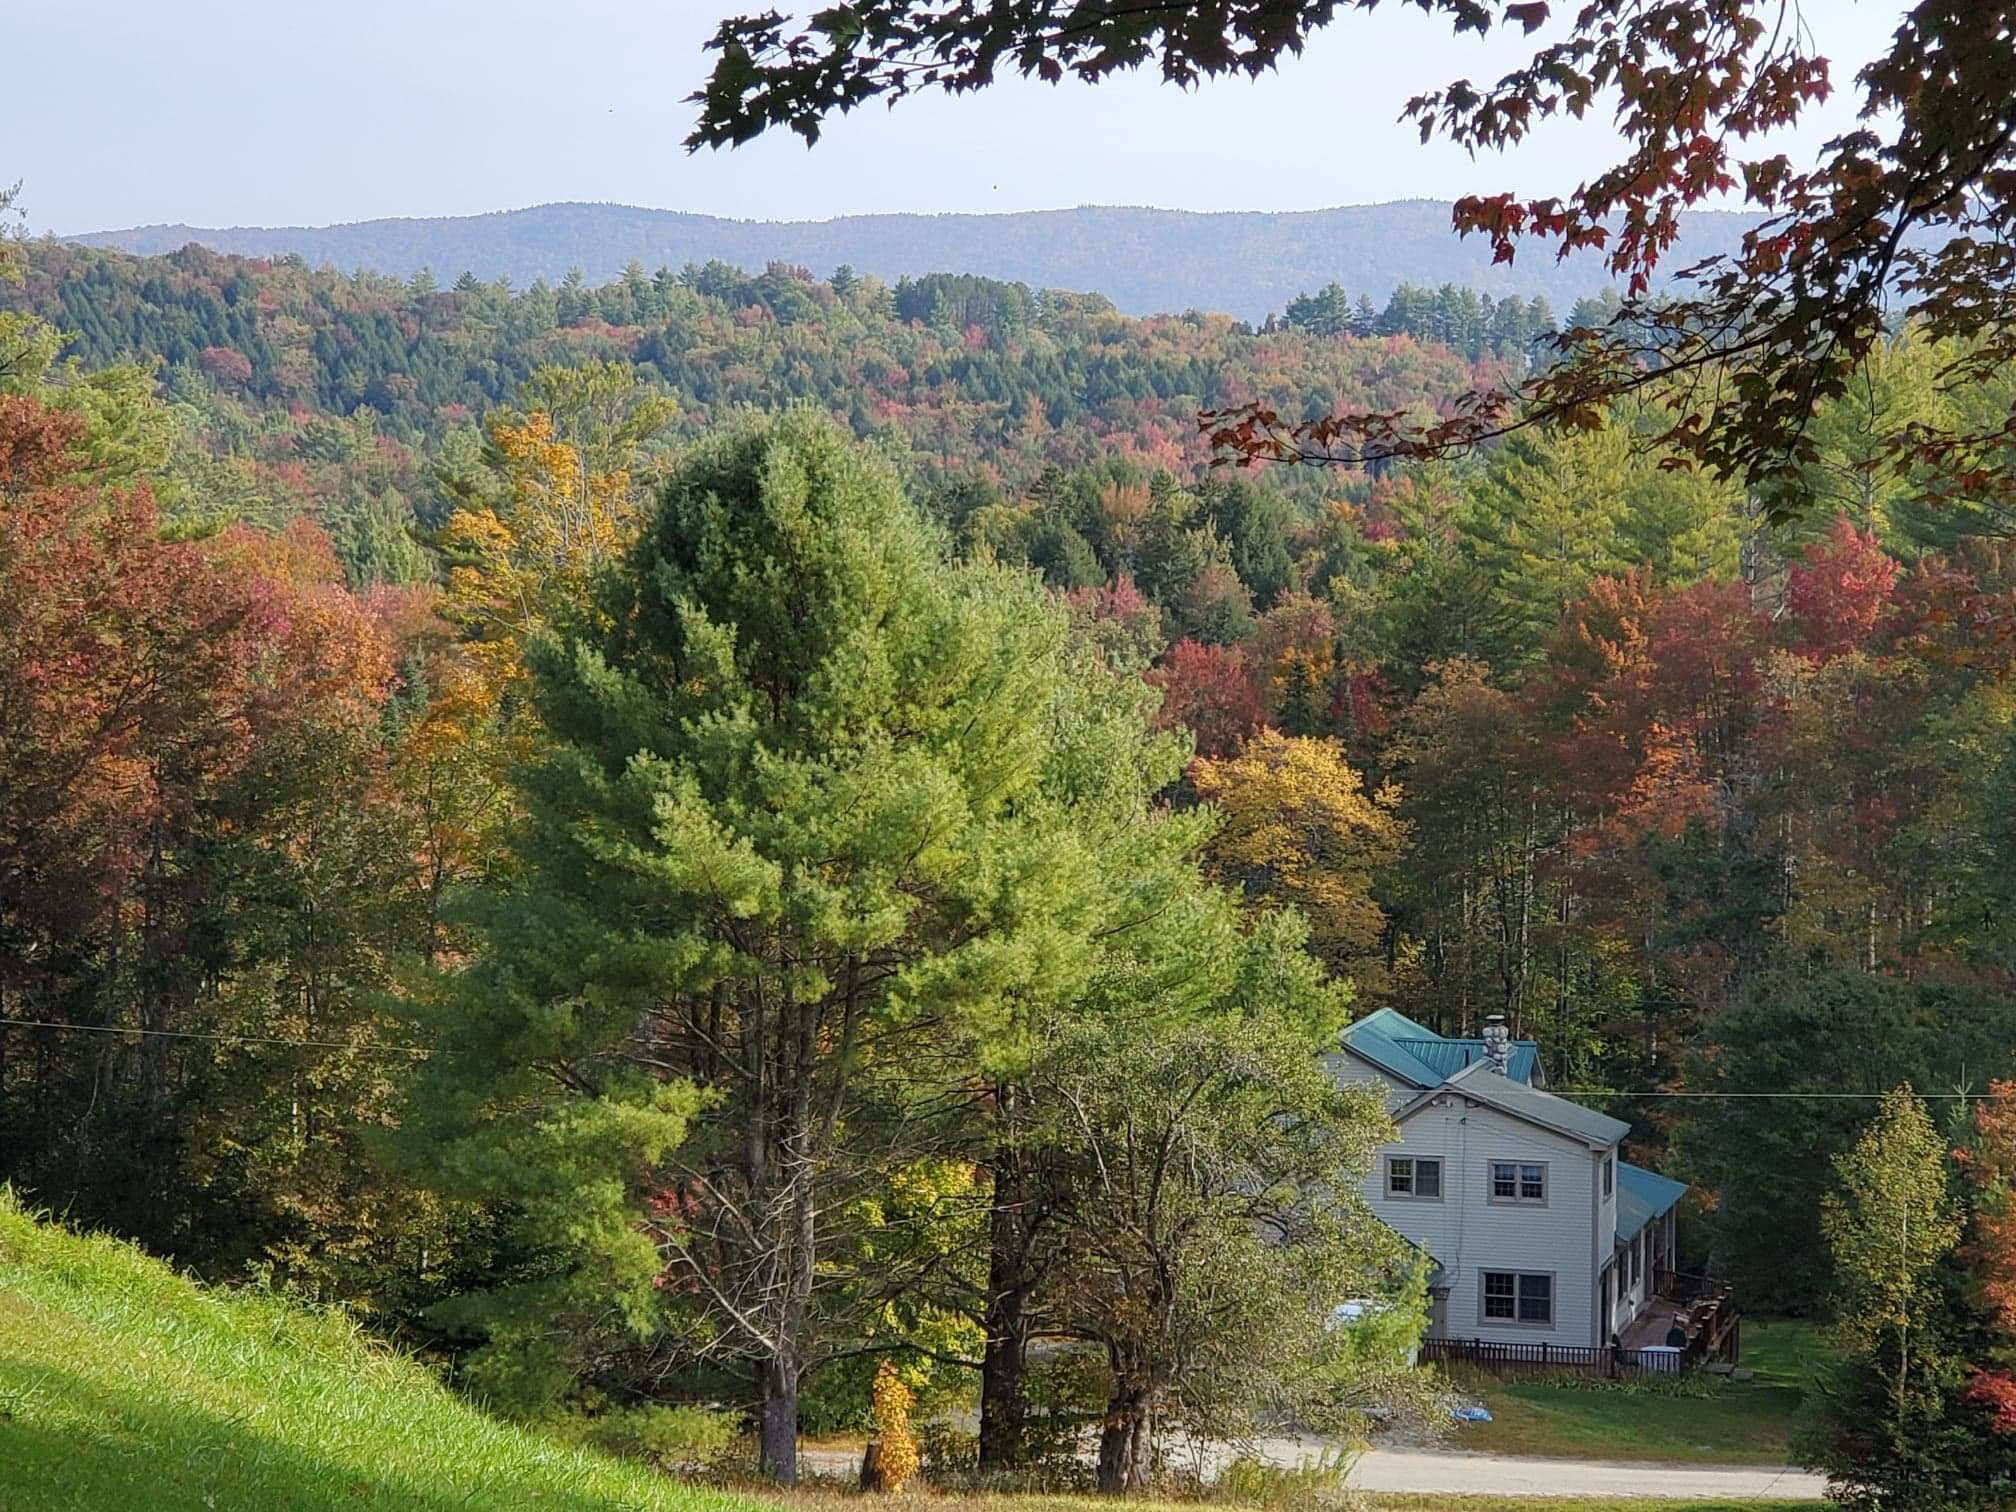 Foliage in Londonderry, VT by Renee-Marie Smith